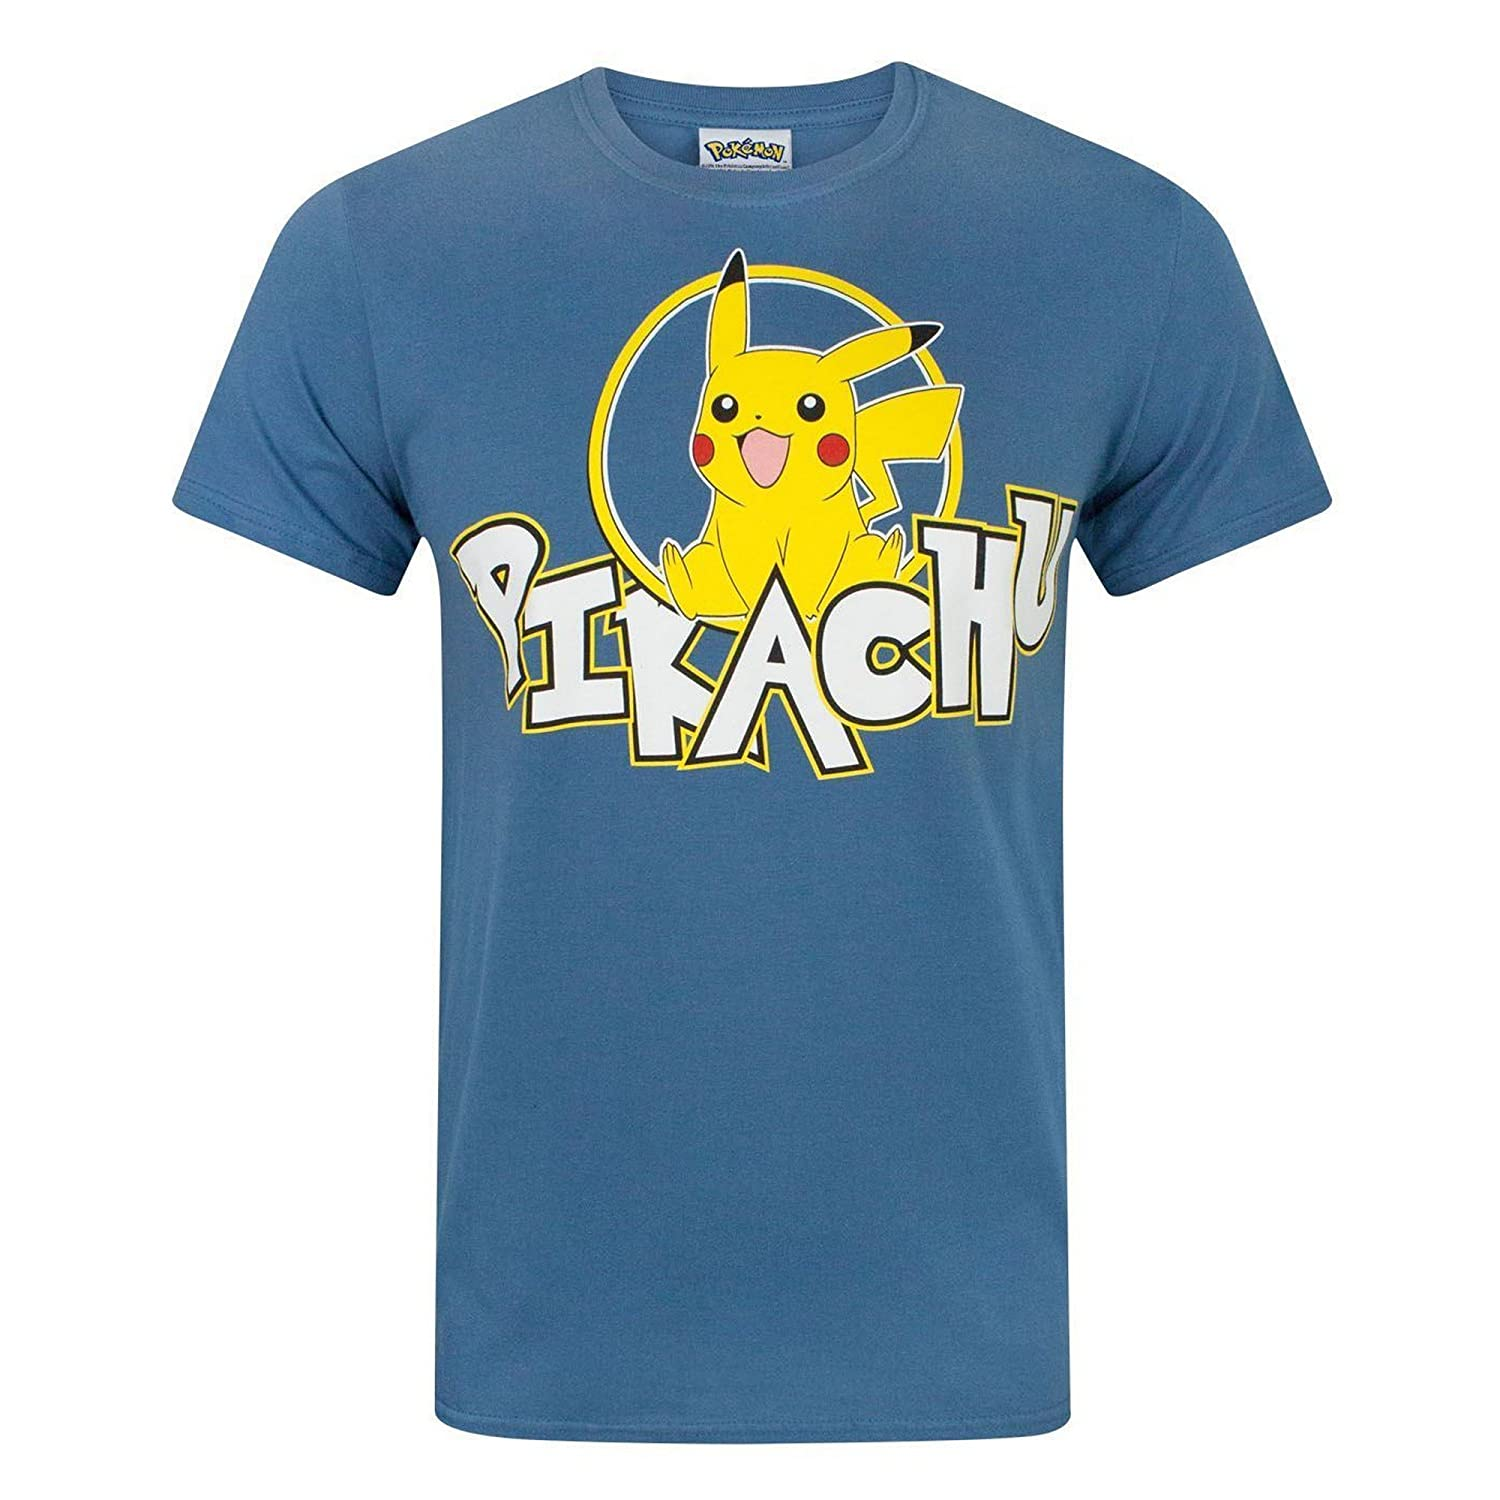 5d609fe15 Pokemon Pikachu Men's T-Shirt (XXL) Blue: Amazon.co.uk: Clothing